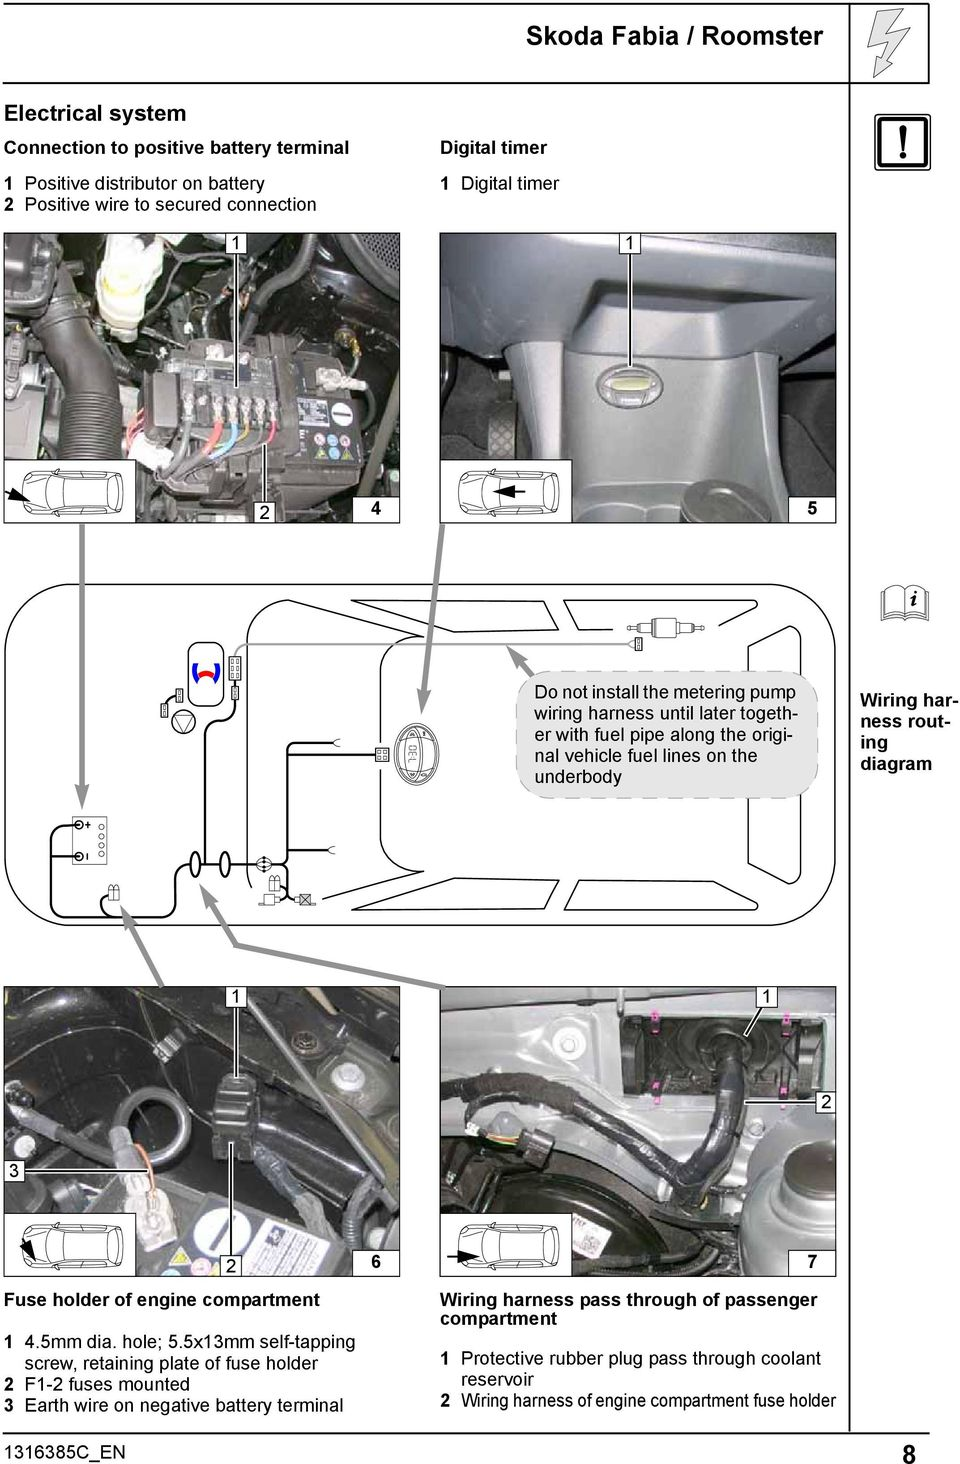 Always Follow All Webasto Installation And Repair Instructions 2003 Vw Beetle Fuse Block Wiring Harness Holder Of Engine Compartment5mm Dia Hole 5